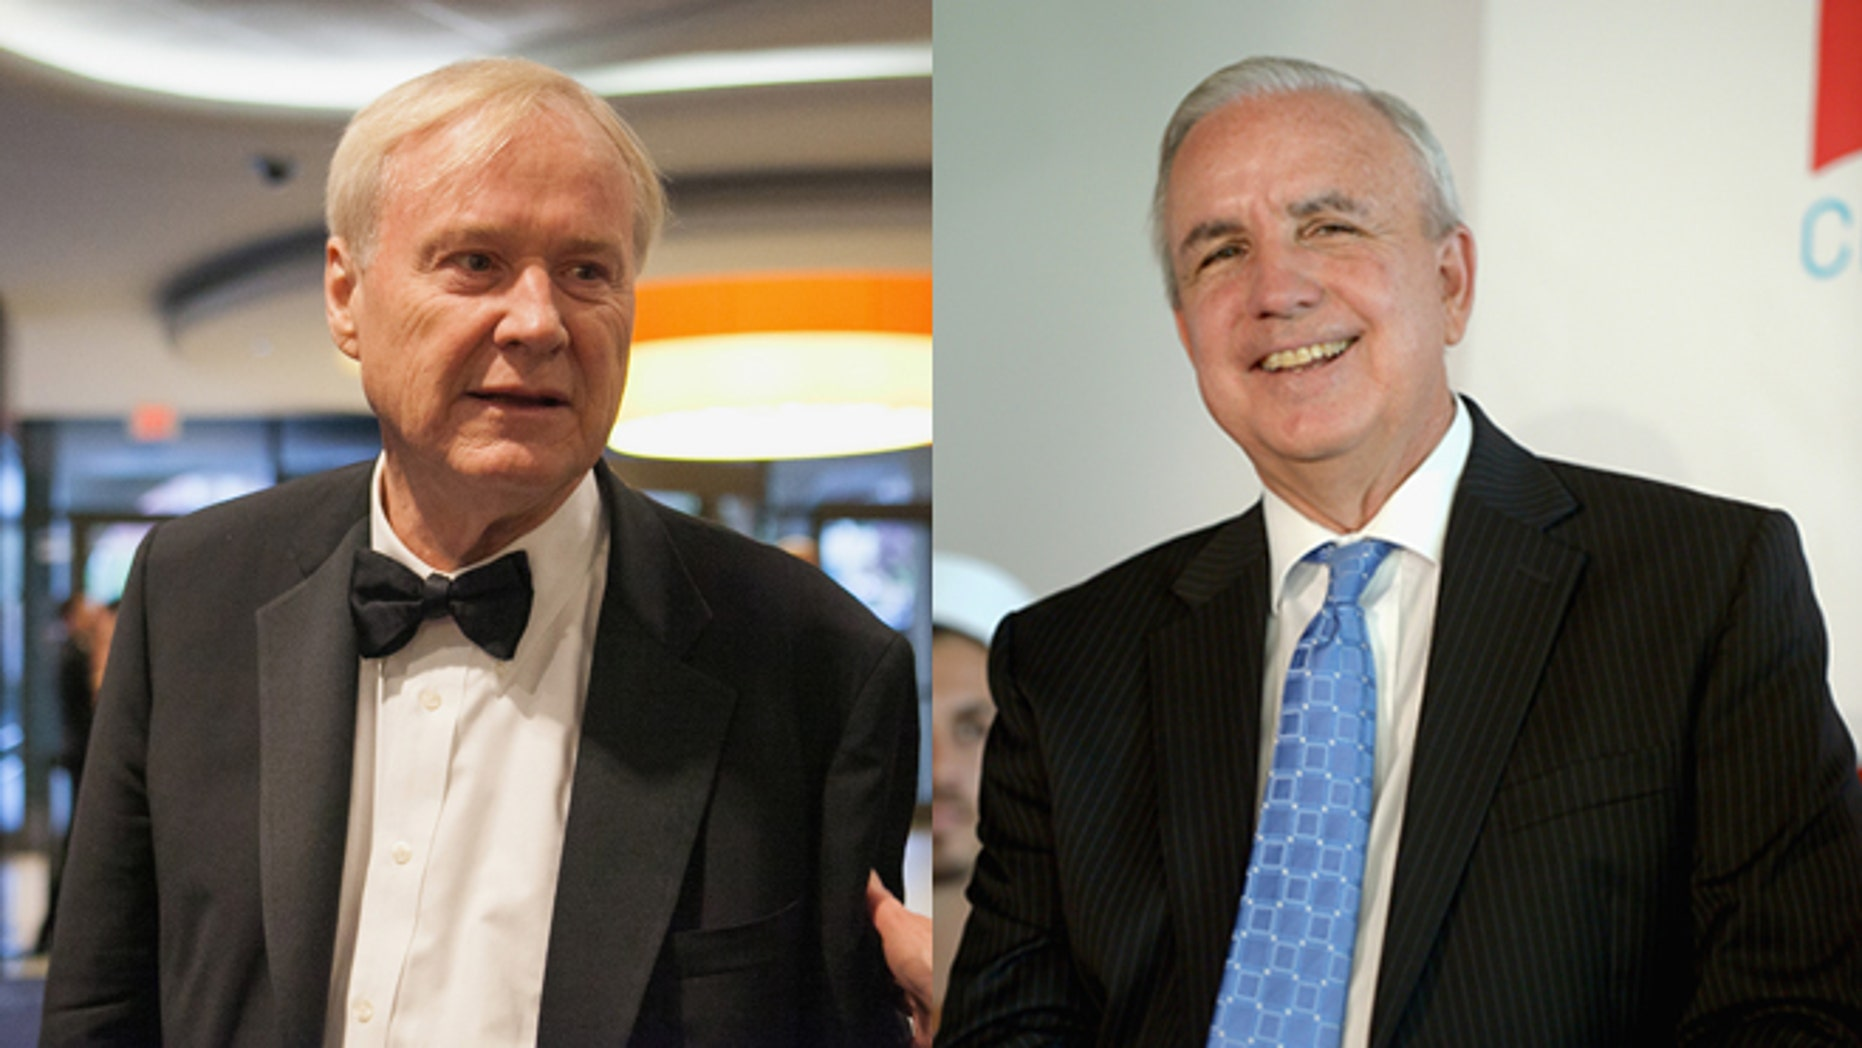 Chris Matthews (left) and Miami-Dade County Mayor Carlos Gimenez. (Photos: Getty Images)